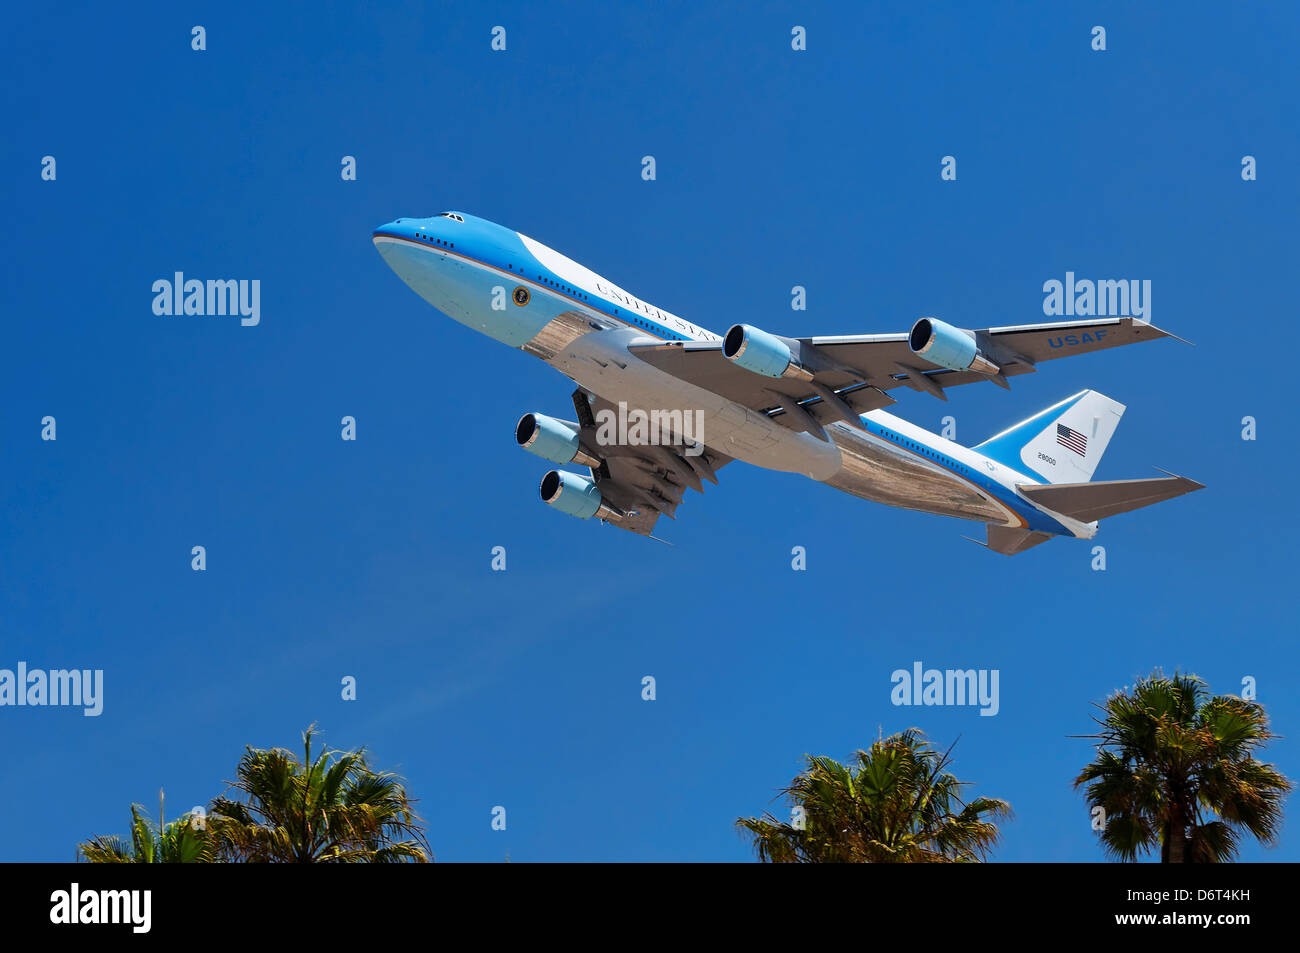 USA California Los Angeles Westchester LAX Air Force One USAF Boeing VC-25 carrying president Obama takes skies - Stock Image